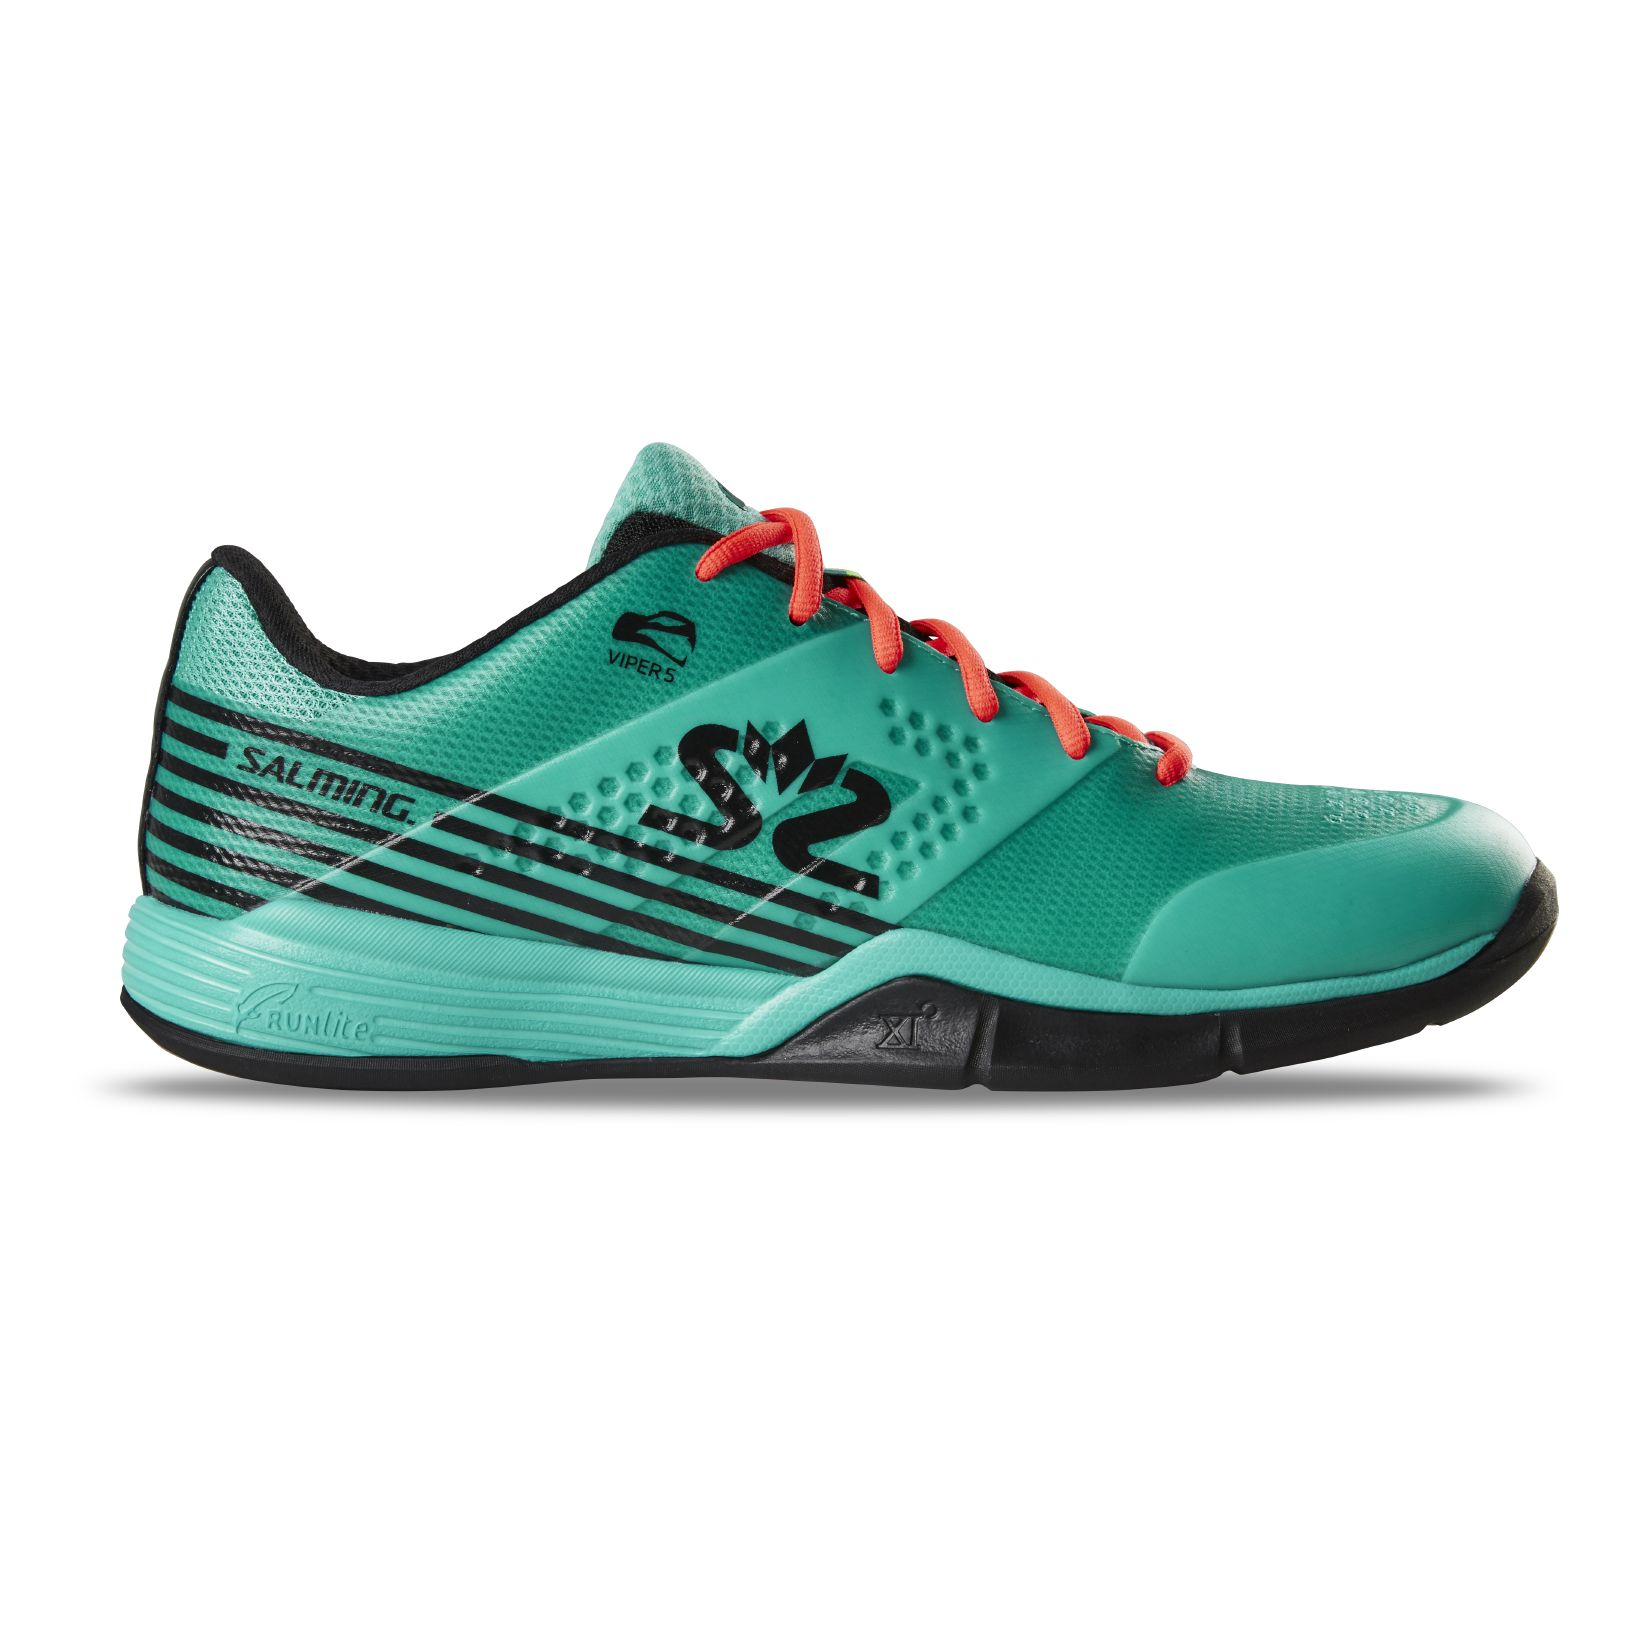 Salming Viper 5 Shoe Men Turquoise/Black 7 UK - 41 1/3 EUR - 26 cm